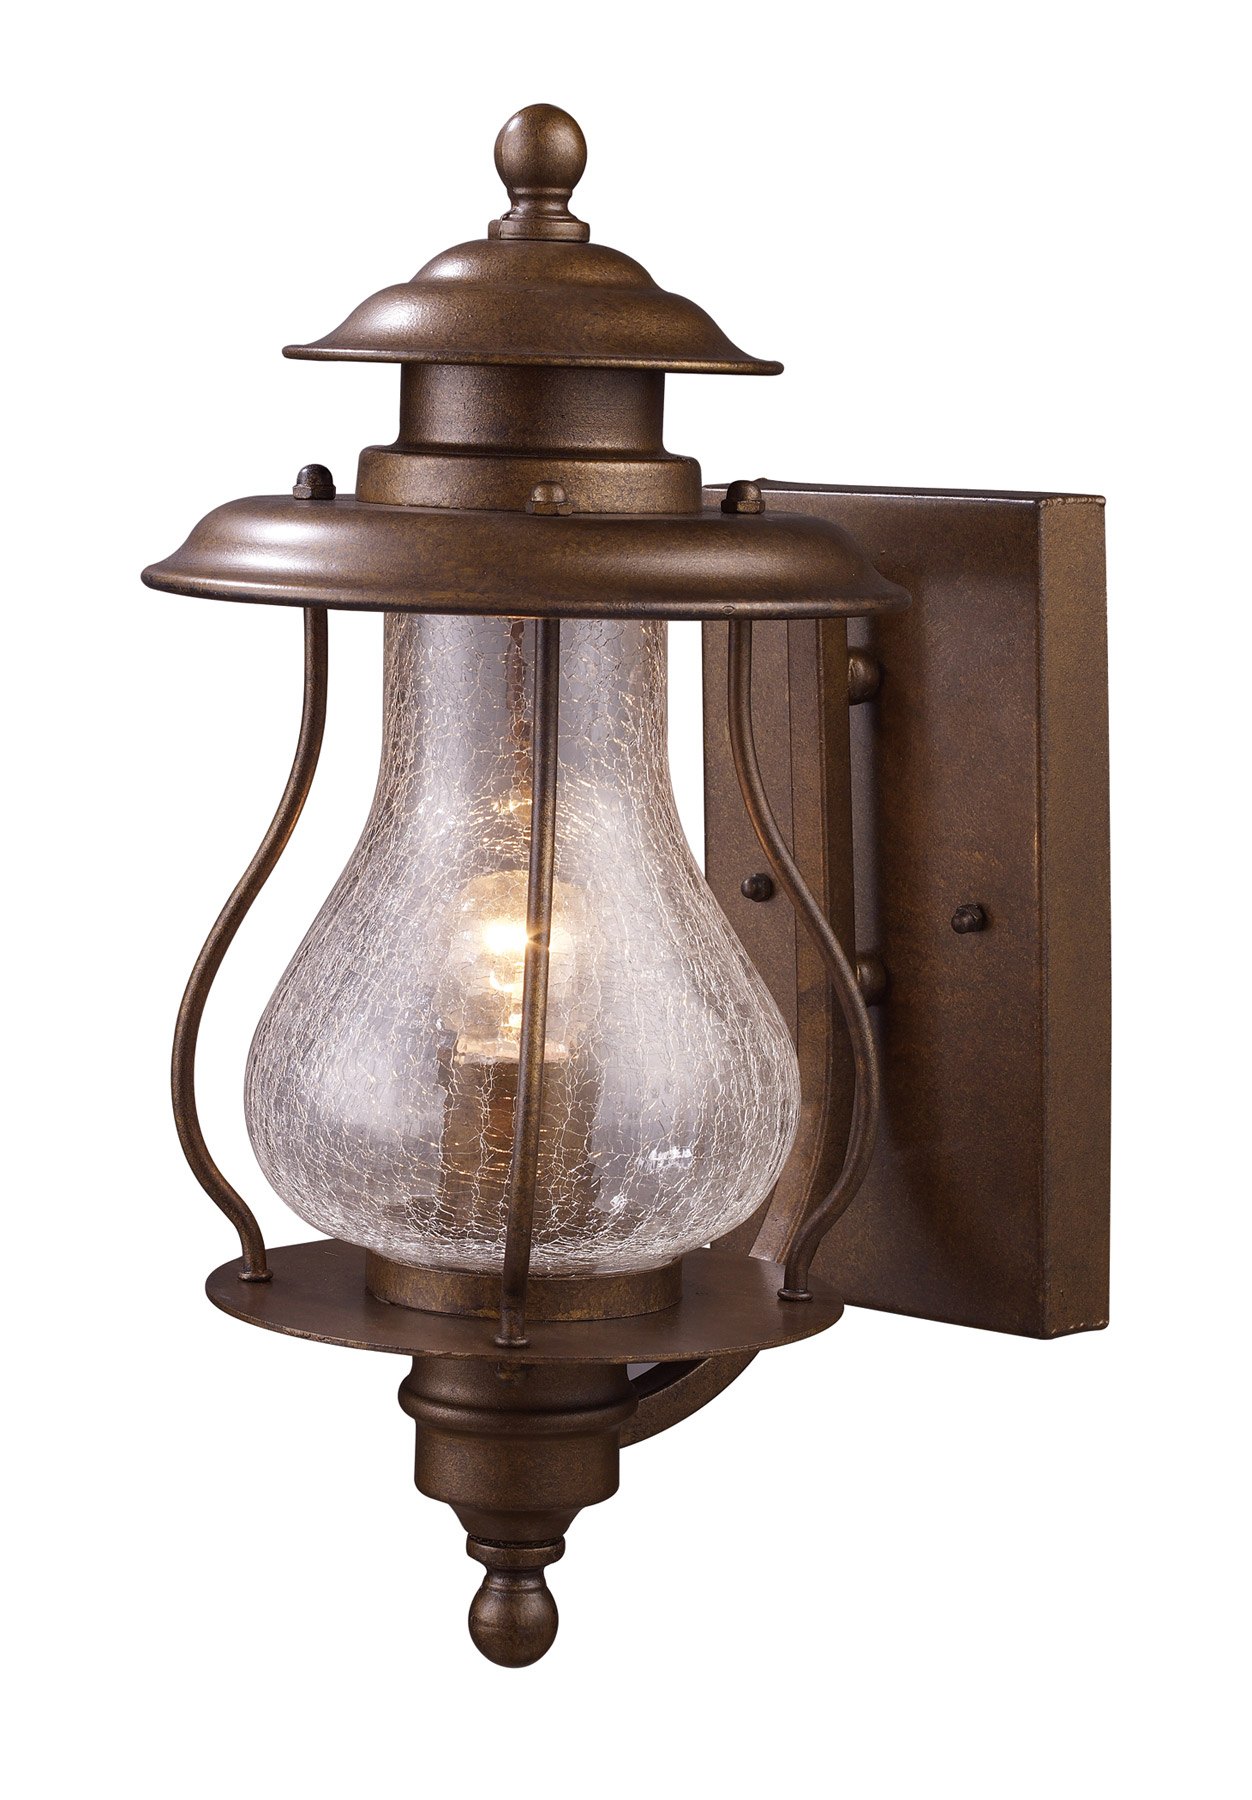 Exterior wall mount led lights - the Most Ideal for Your ... on Exterior Wall Sconce Light Fixtures id=70819